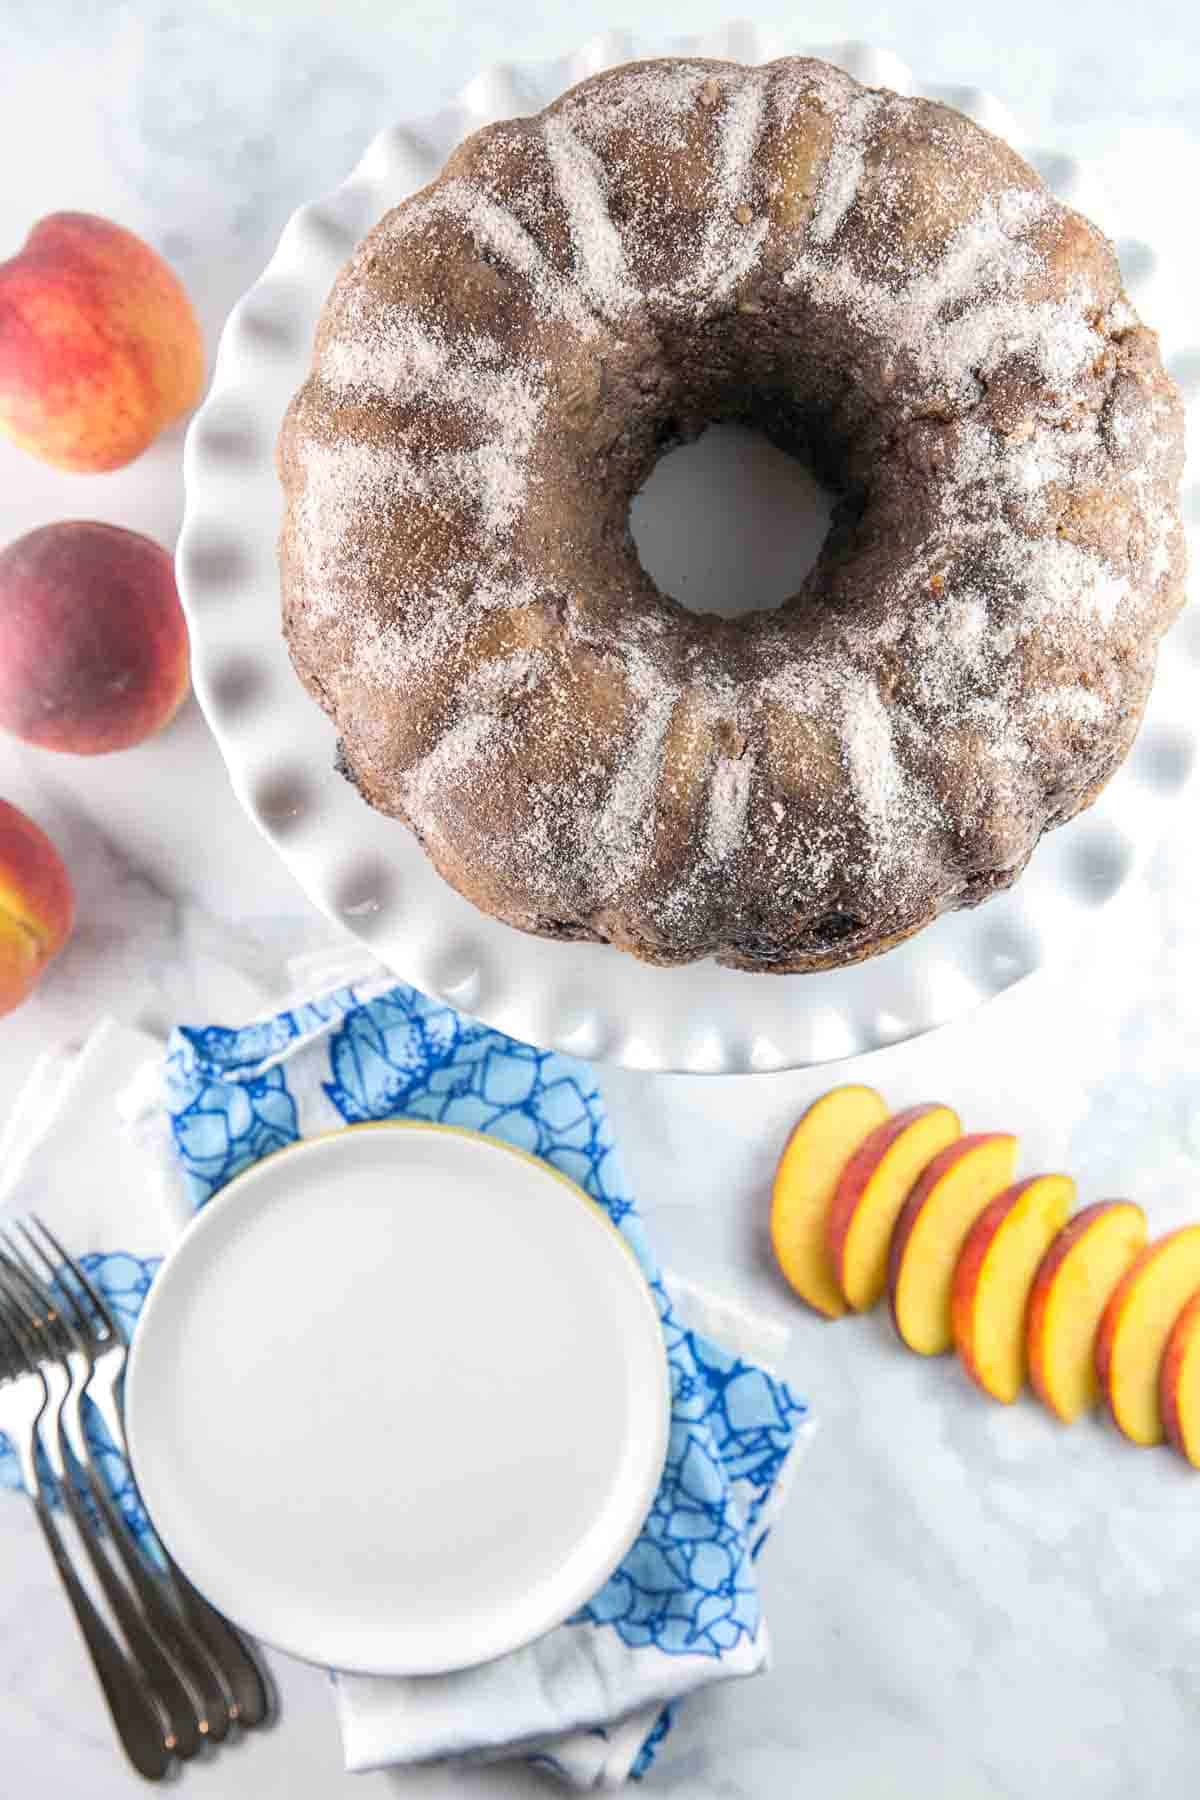 Cinnamon Sugar Peach Bundt Cake: An easy mix-by-hand dairy free peach bundt cake with a crunchy cinnamon sugar shell. {Bunsen Burner Bakery} #cake #bundtcake #peachcake #cinnamonsugar